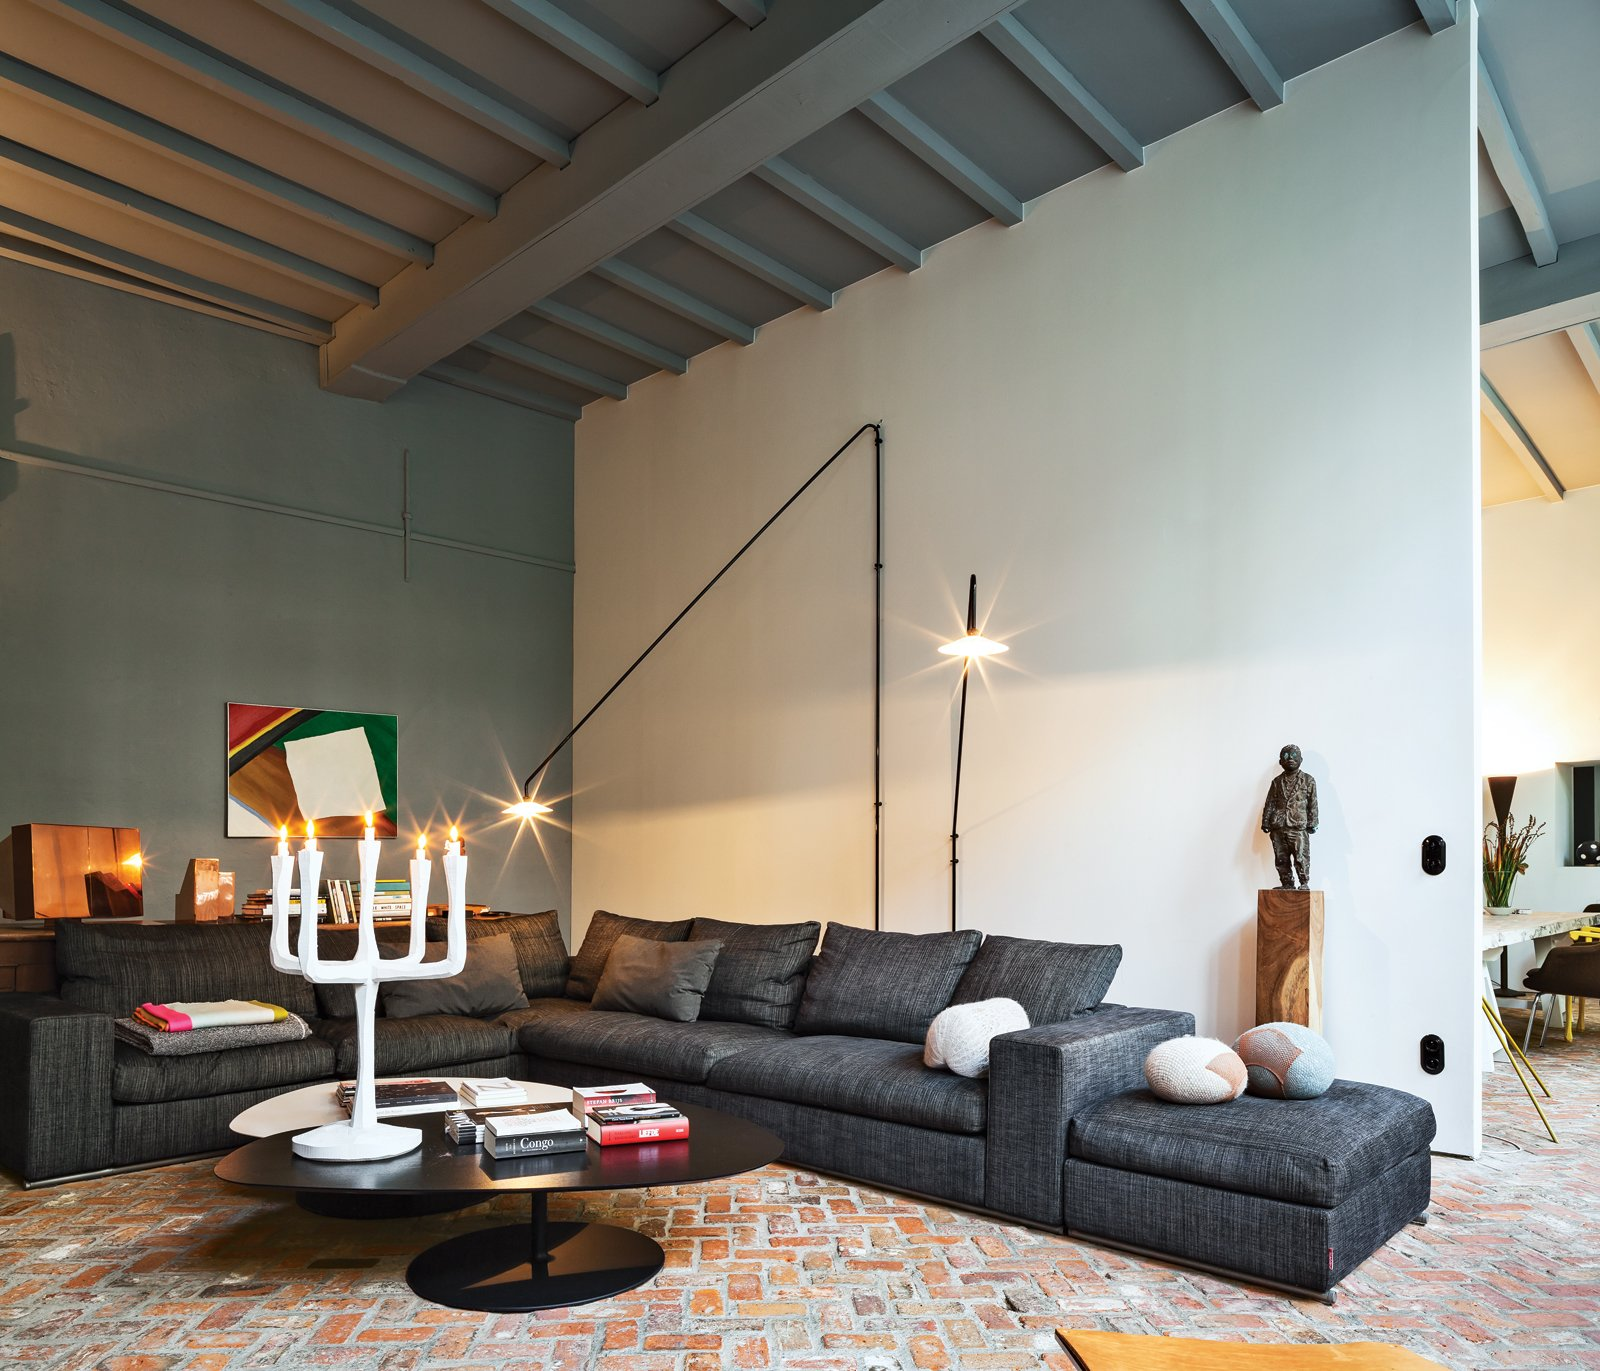 Living Room, Brick Floor, Sofa, Sectional, Floor Lighting, and Table Lighting The room also contains a sofa by Flexform, cushions from textile firm Chevalier Masson, a Jens Fager candelabra, and a painting by Roger Raveel.  Photos from An Eclectic Living Room in Antwerp